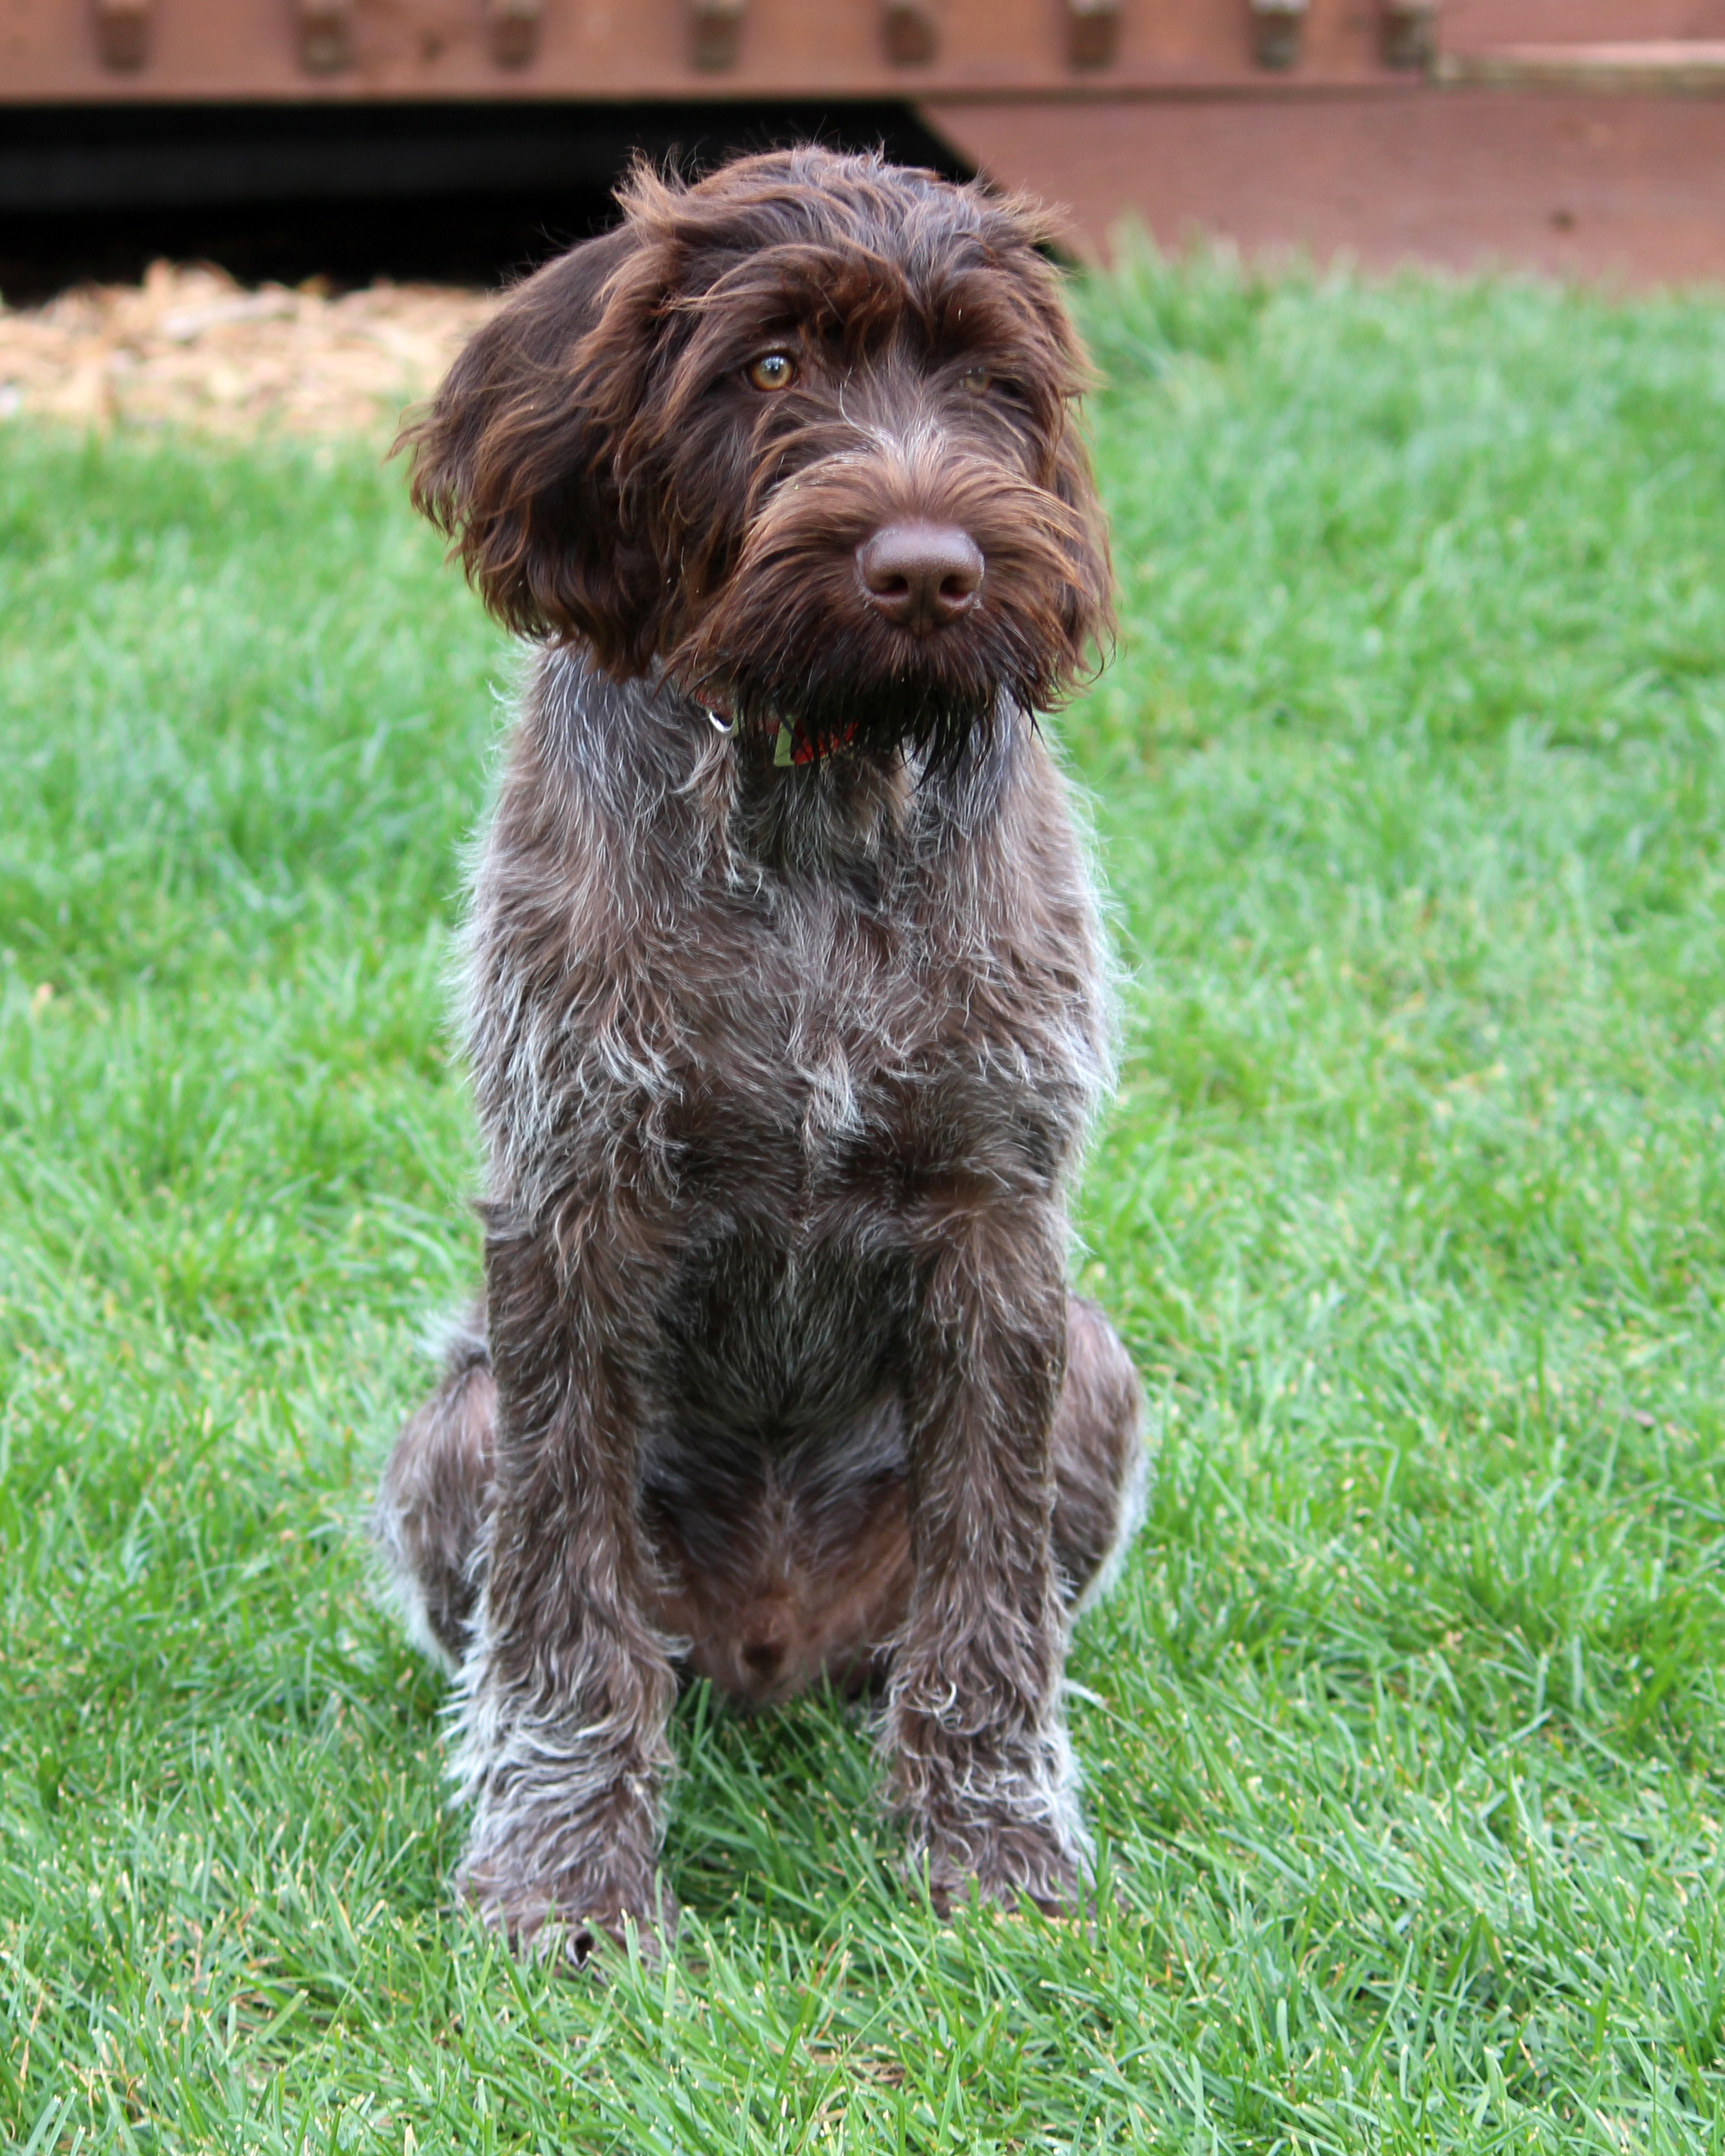 Slovakian Rough Haired Pointer Puppies Puppy Dog Gallery